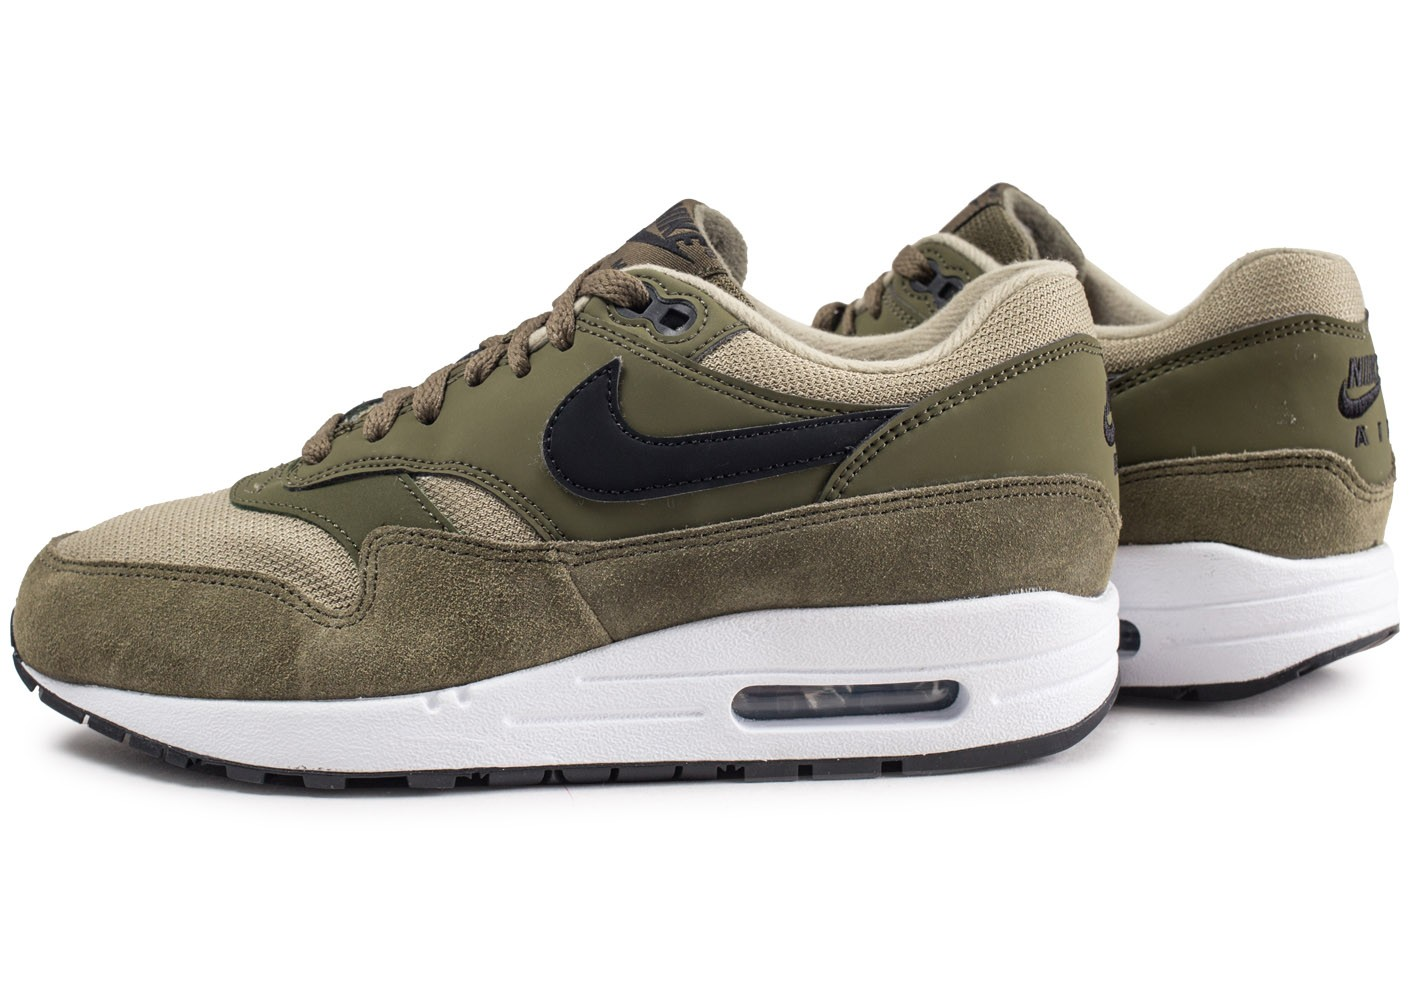 Nike Air Max 1 olive femme Chaussures Toutes les baskets